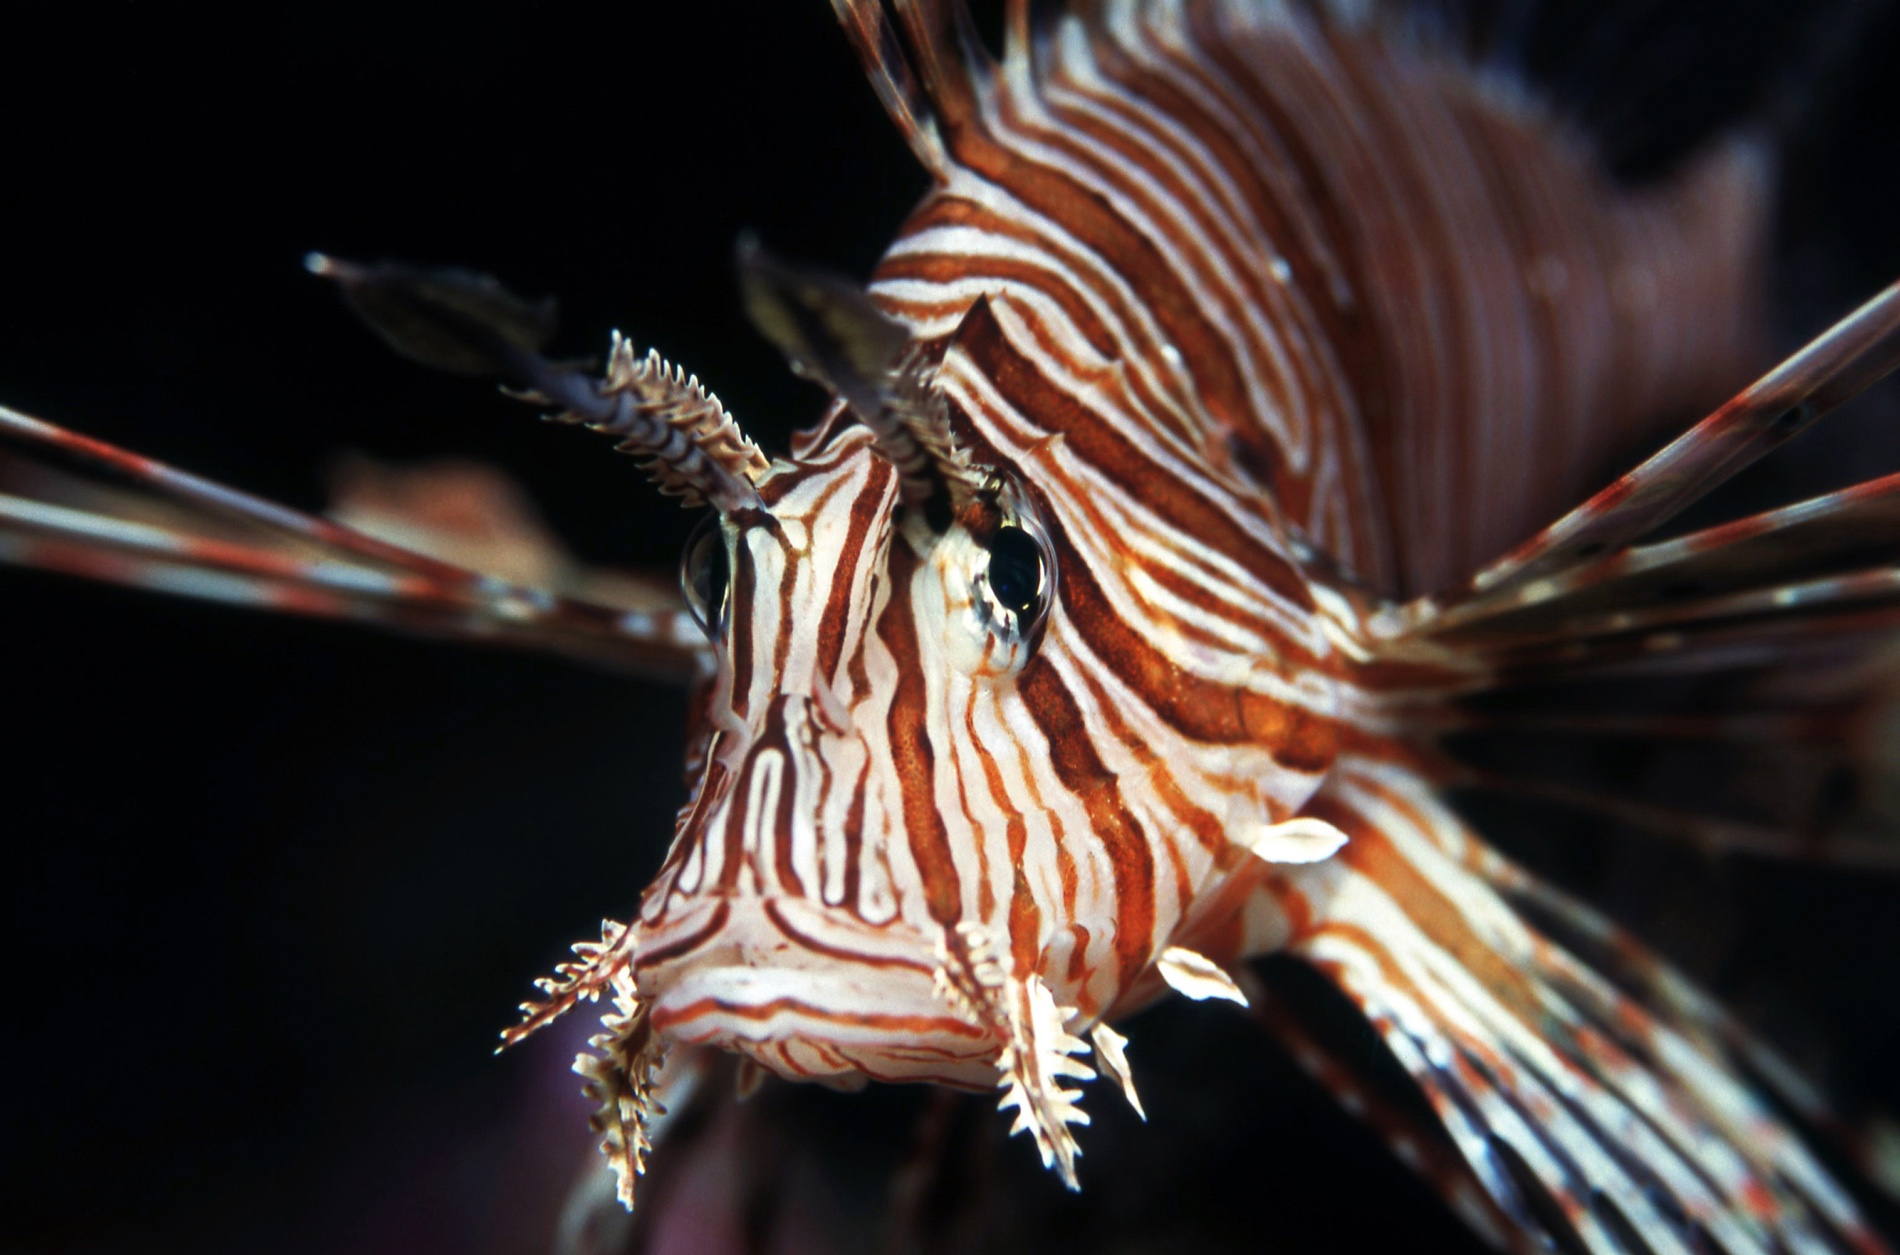 The Voracious and Invasive Lionfish Is Taking Over the